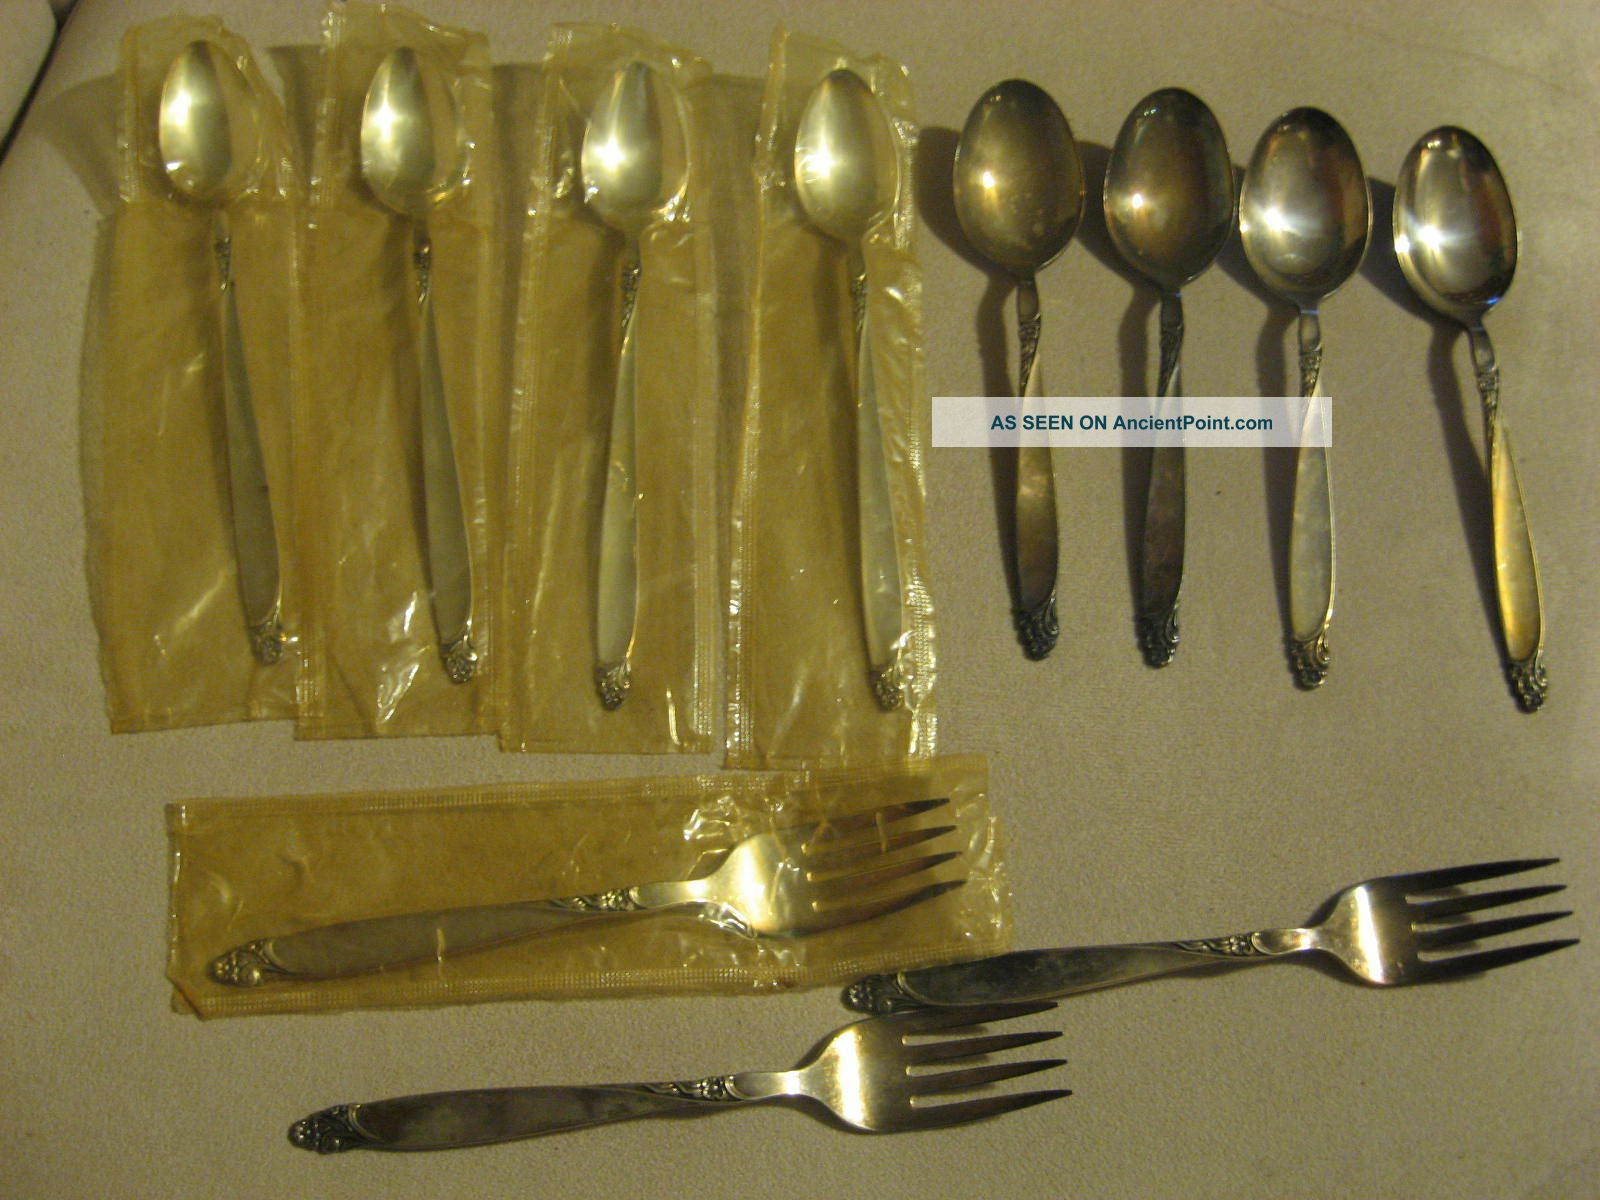 Vintage Oneida Prestige Firelight 1959 Tea Spoons Soup ? Spoons Forks Some New Other photo